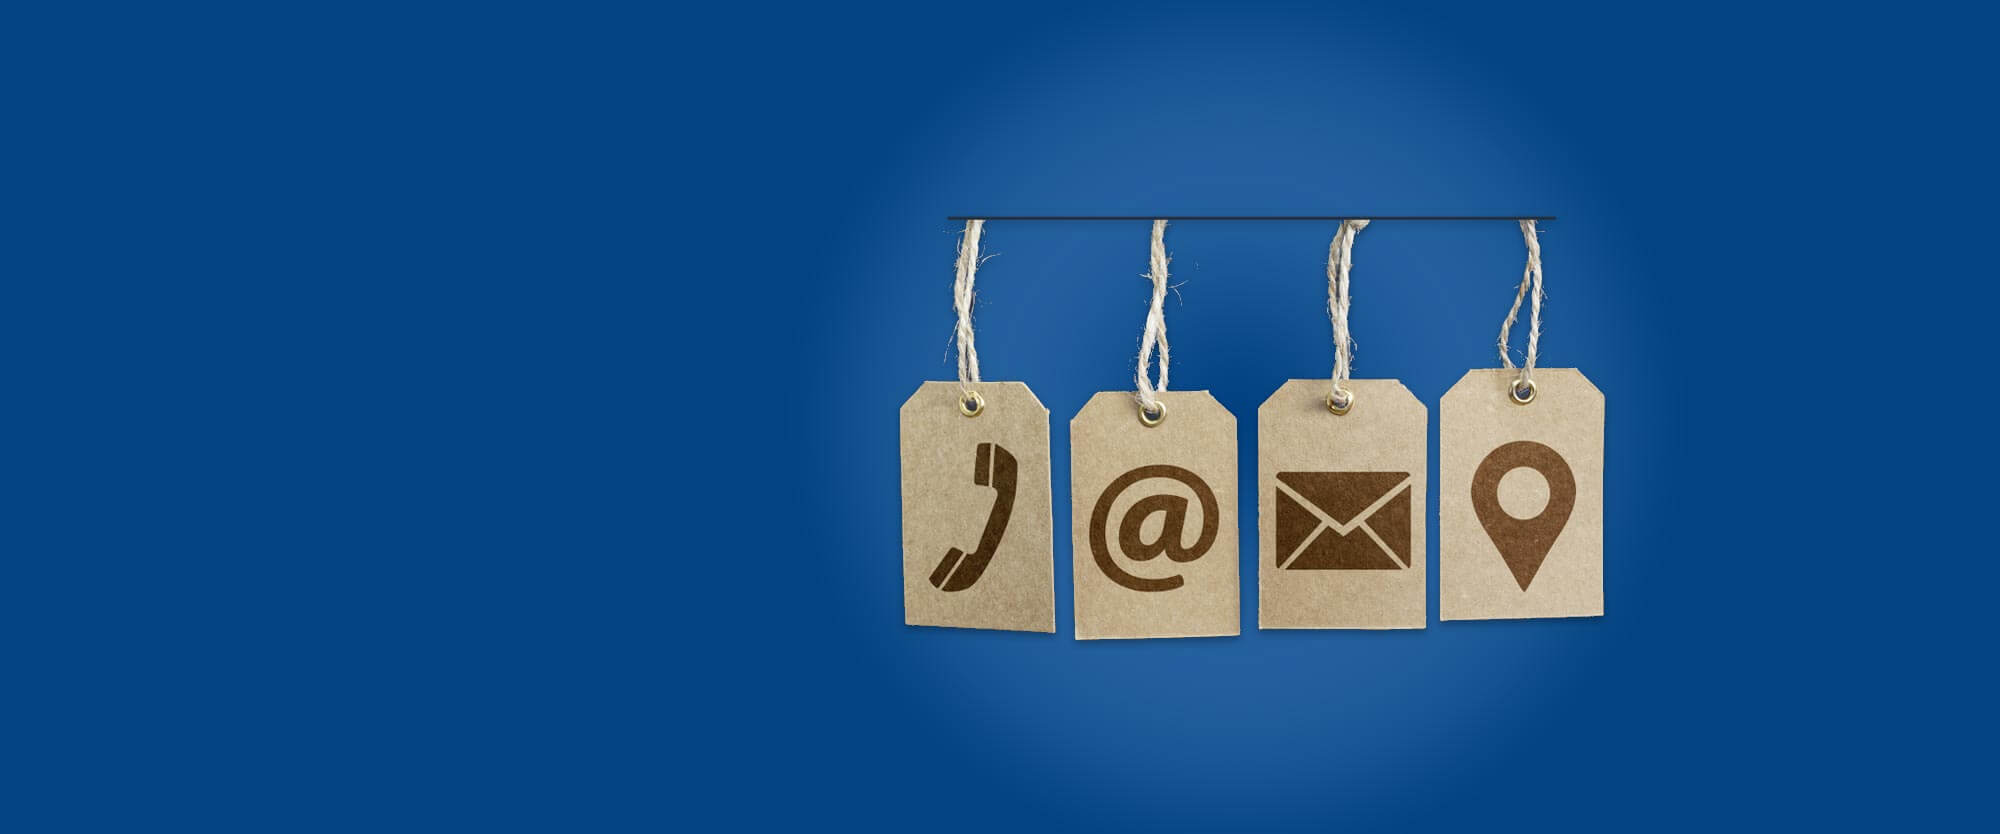 Hanging cardboard tags depicting a phone, email sign, envelope, and map marker pin